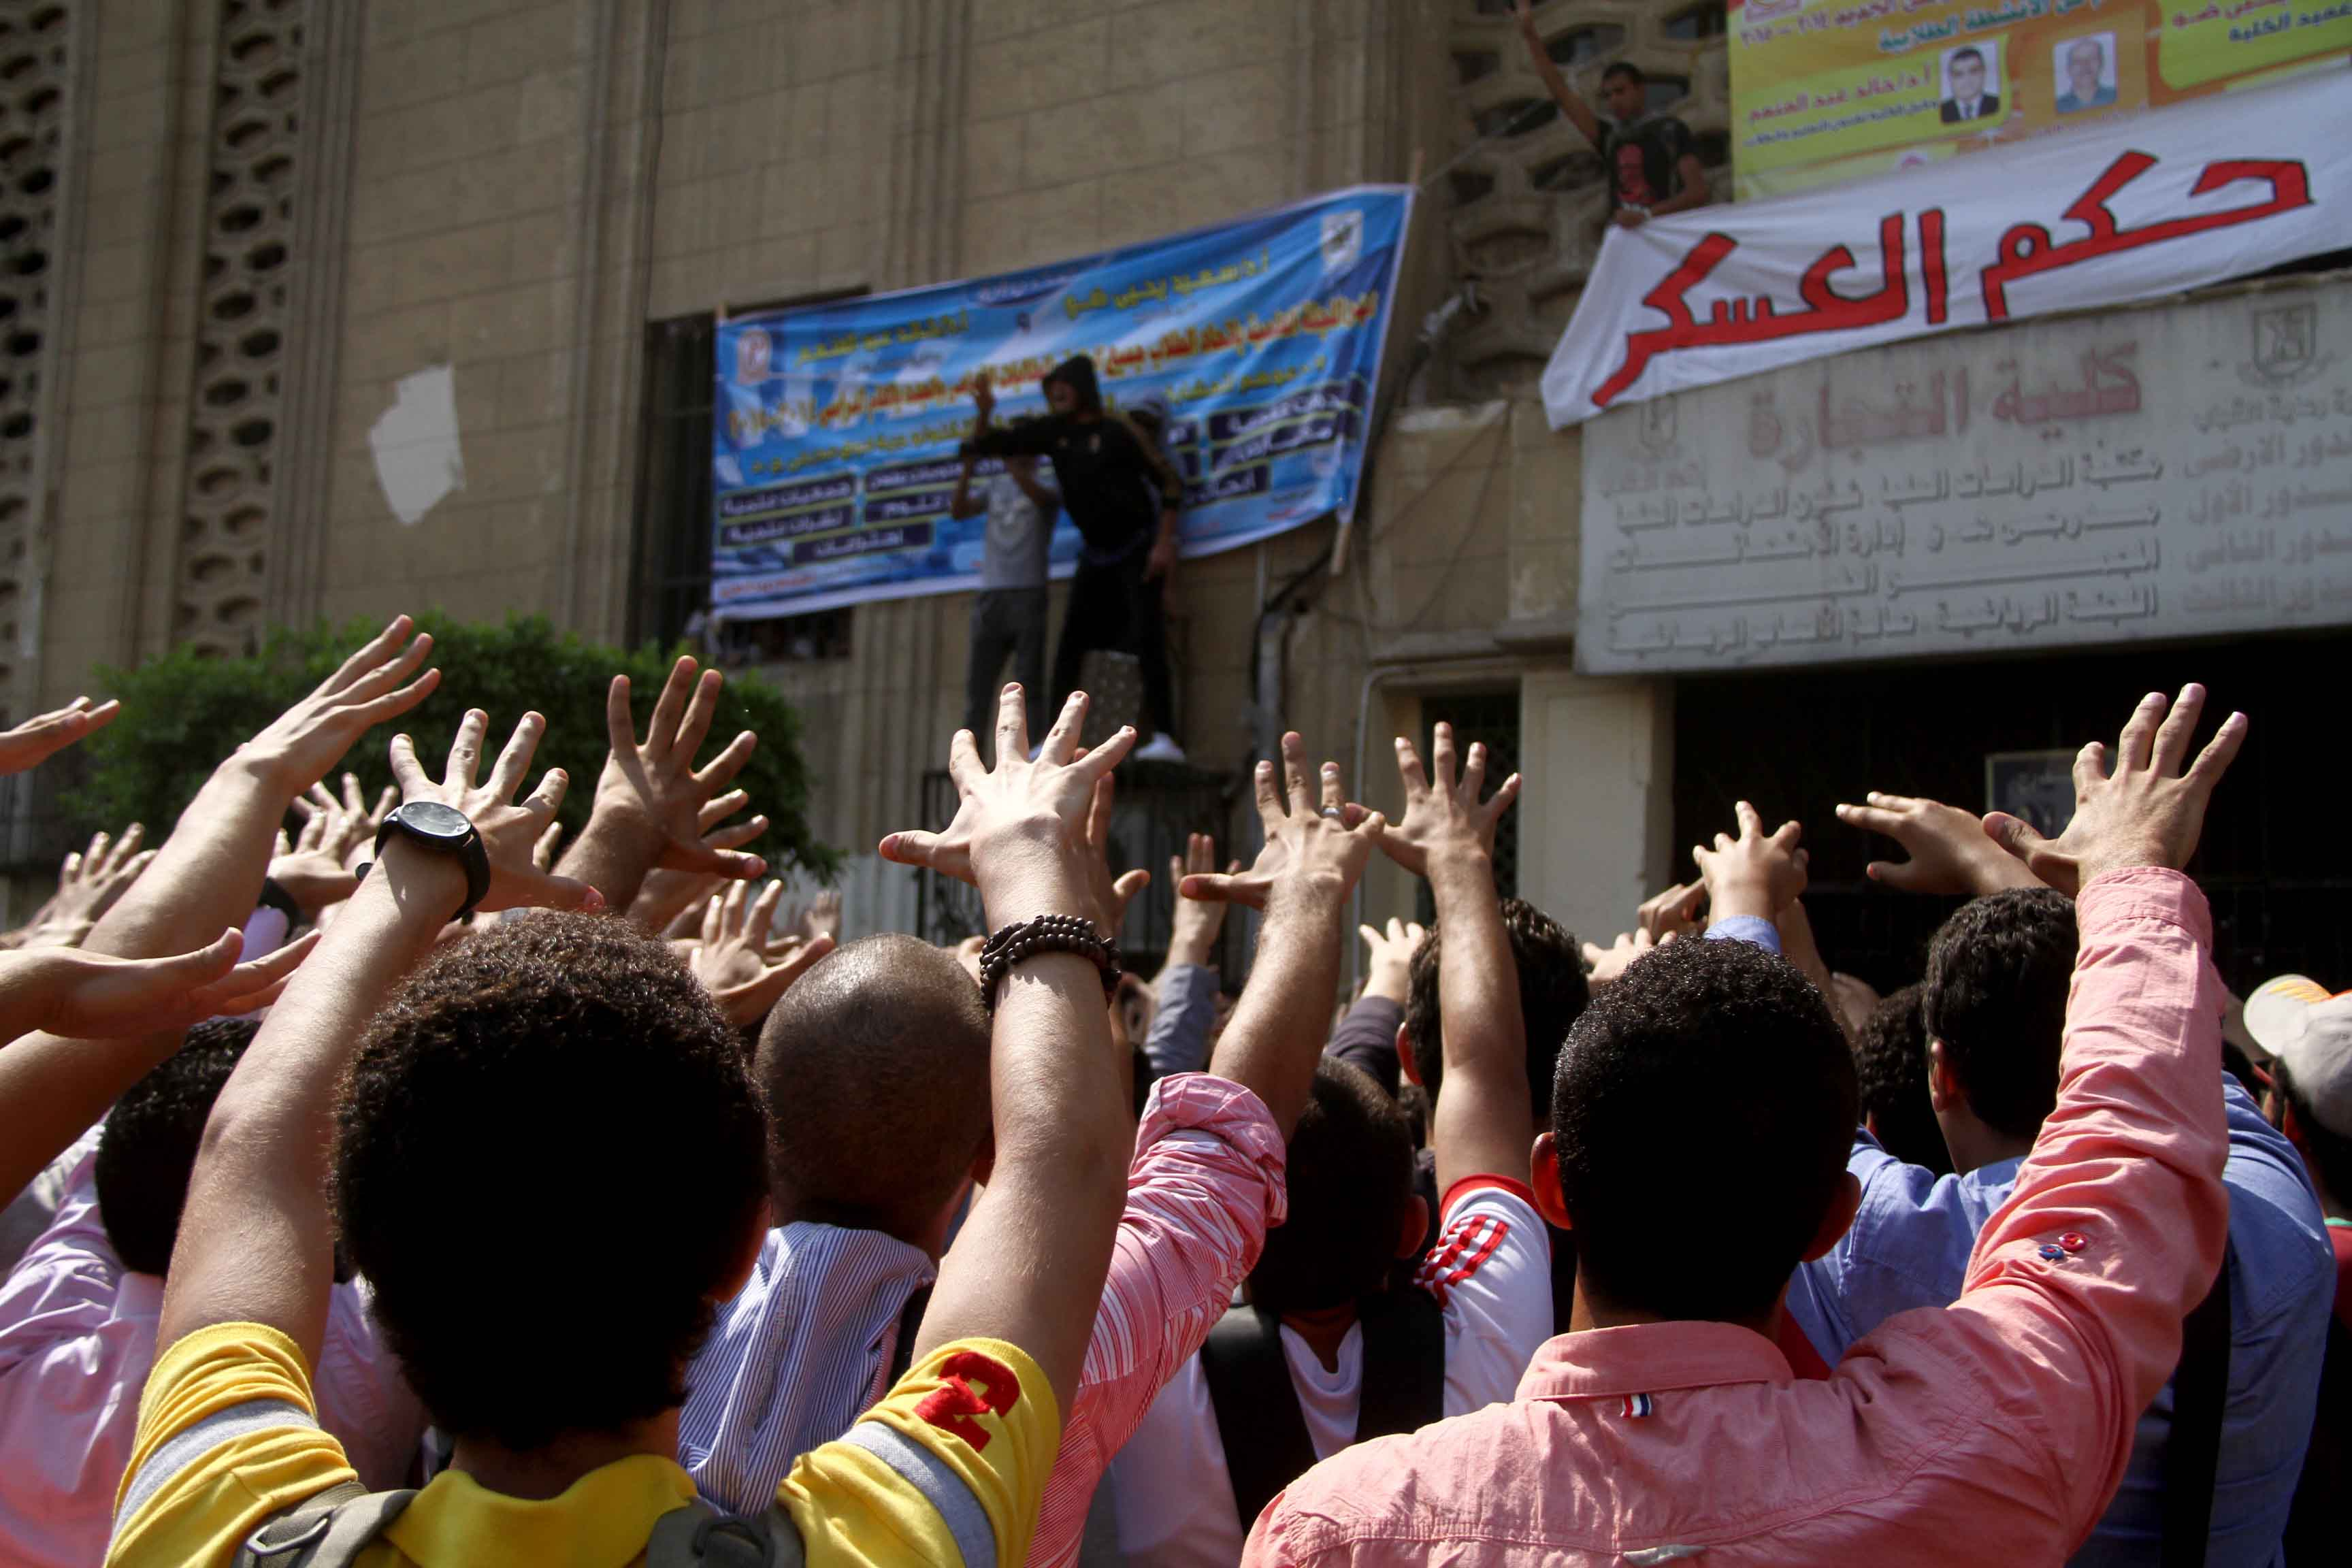 Cairo University Students protest on October 12, 2014. (Photo by Ahmed Al-Malky\DNE)